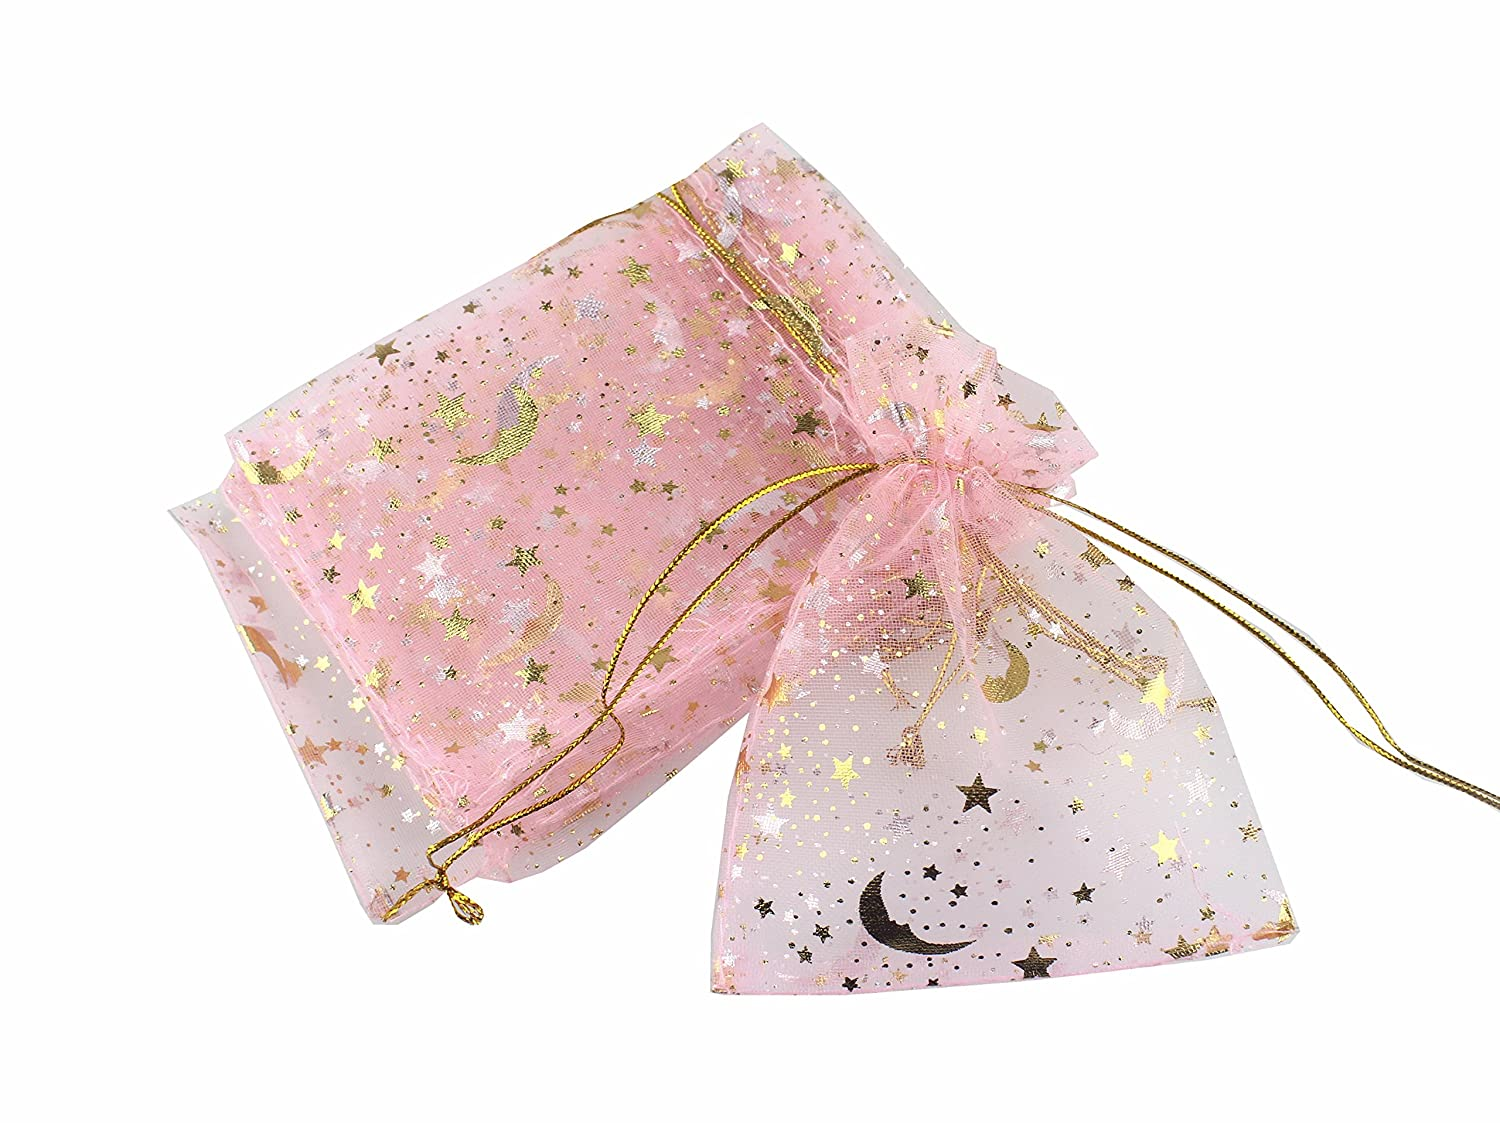 Amazon.com: QIANHAILIZZ 100 Moon Star - Bolsa de organza ...